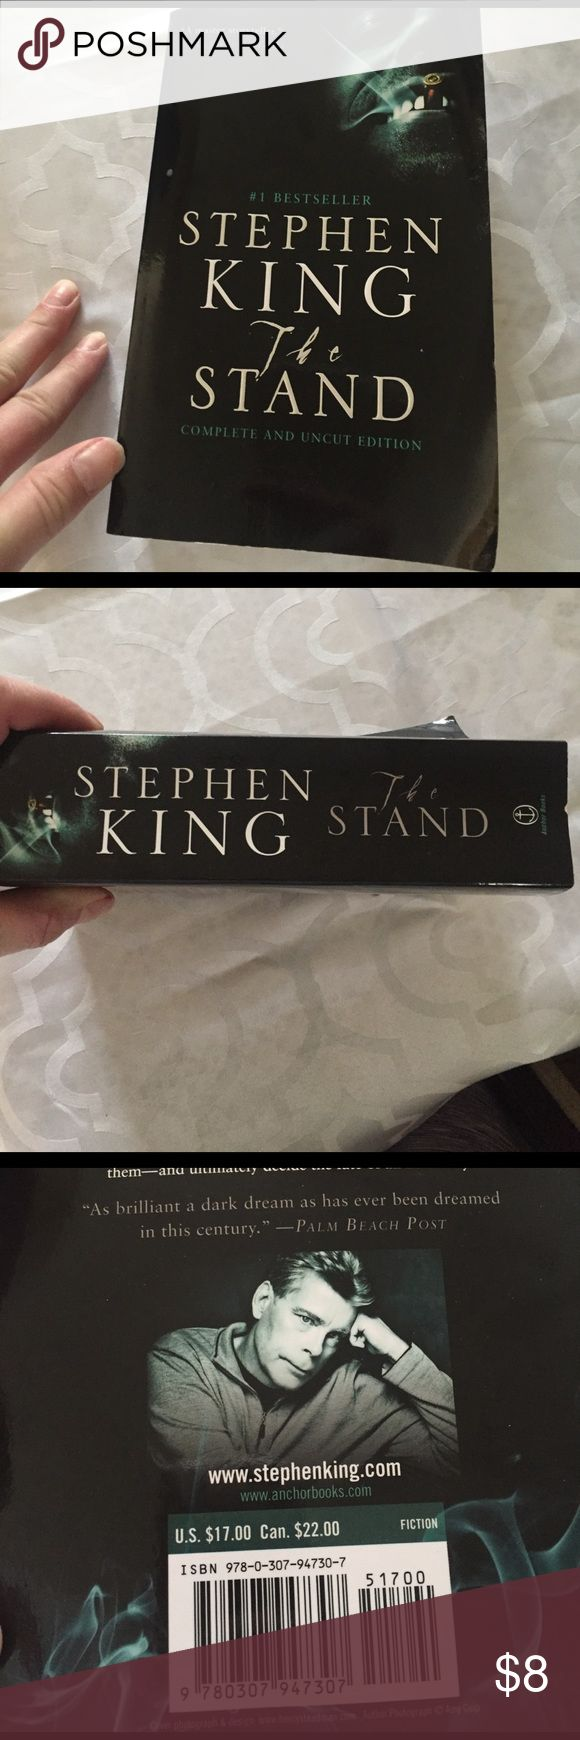 Stephen Kings the stand Brand-new book purchased at Barnes & Noble daughter decided not to read it book Accessories